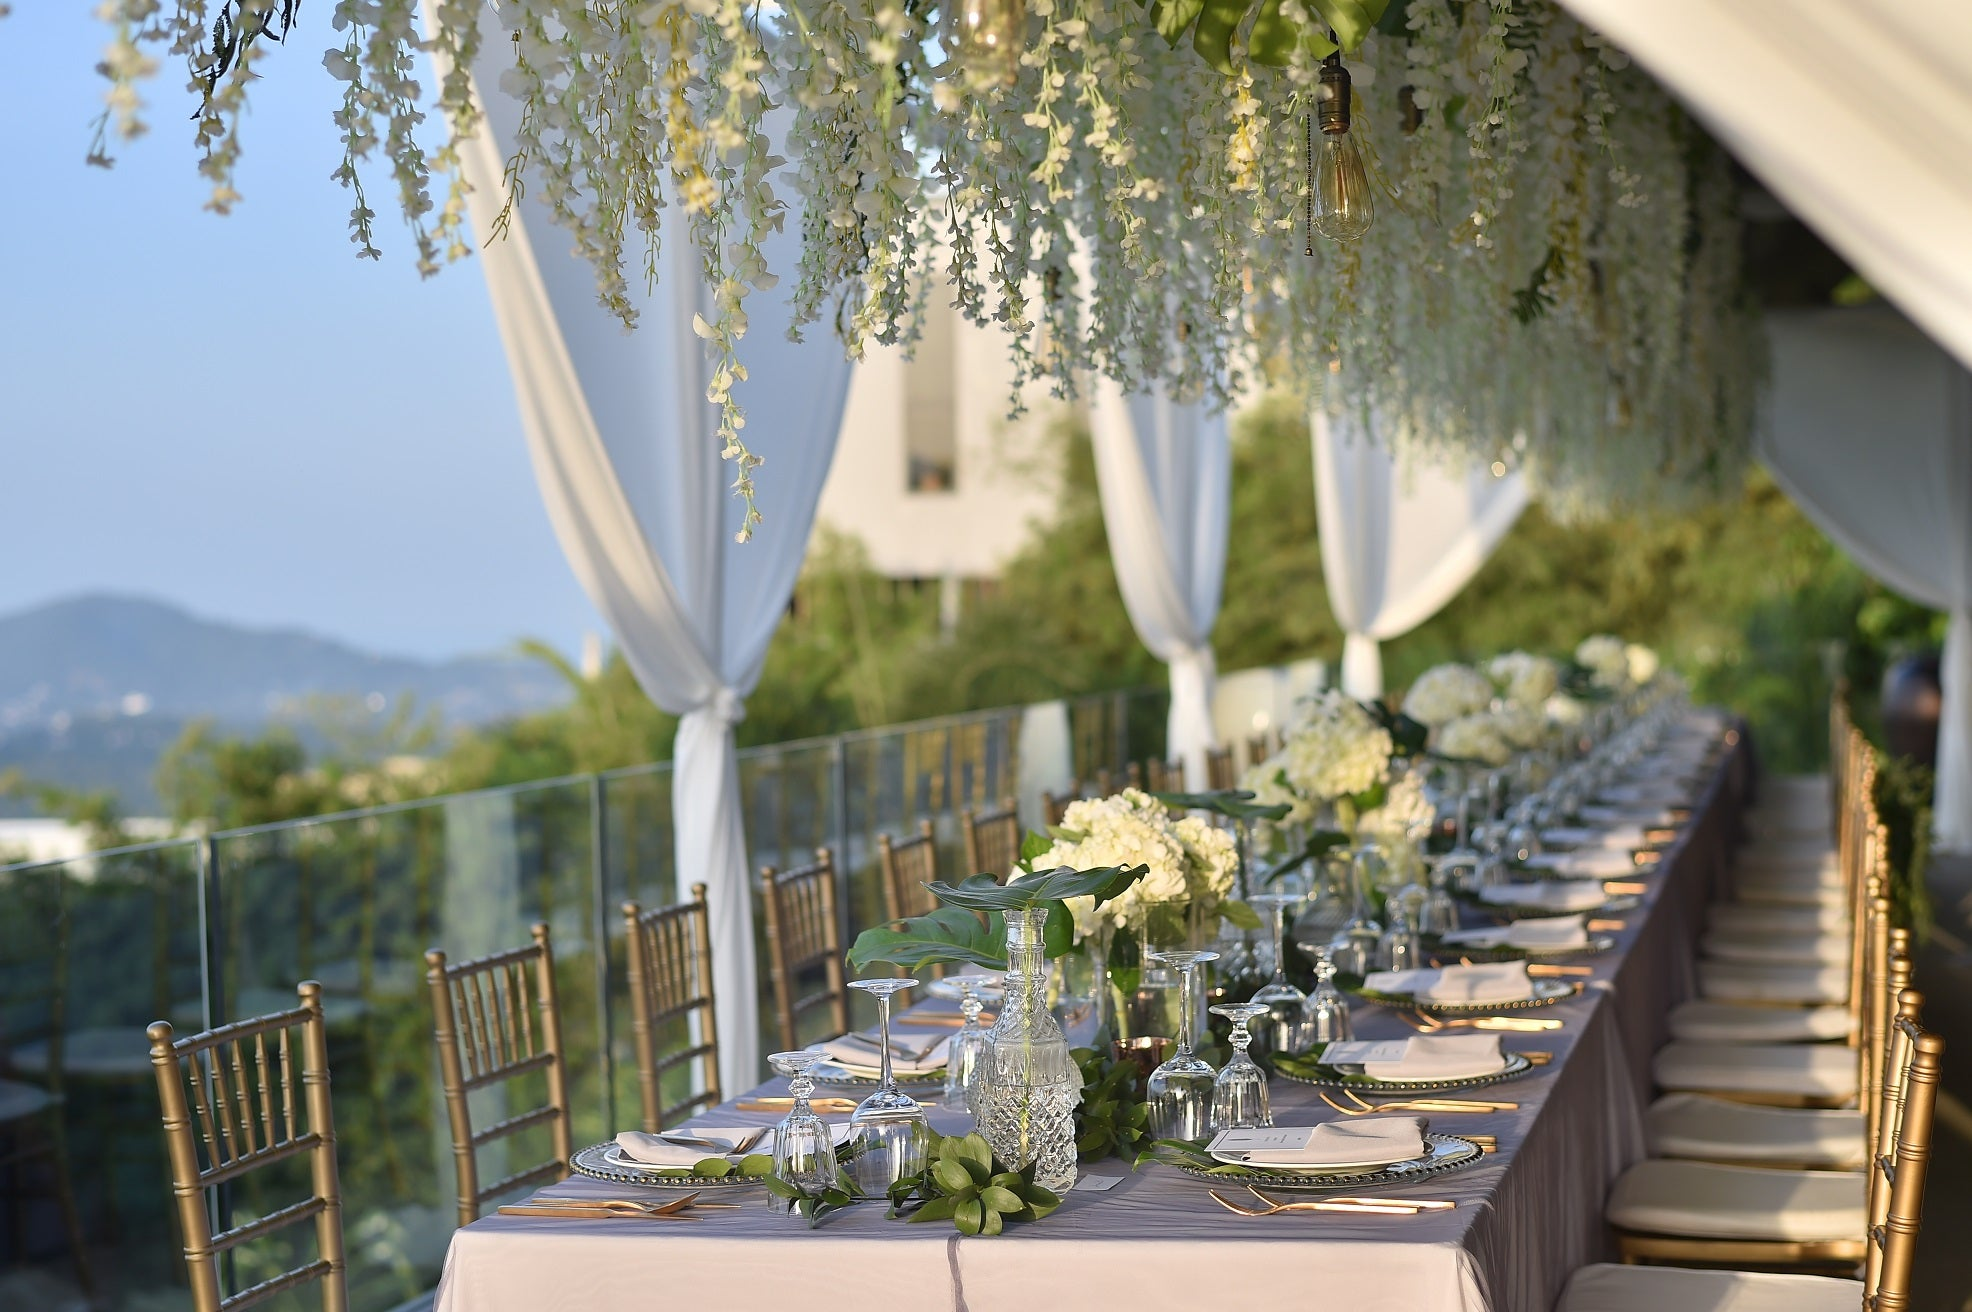 banquet table with tablecloths and glass flower vase centerpiece